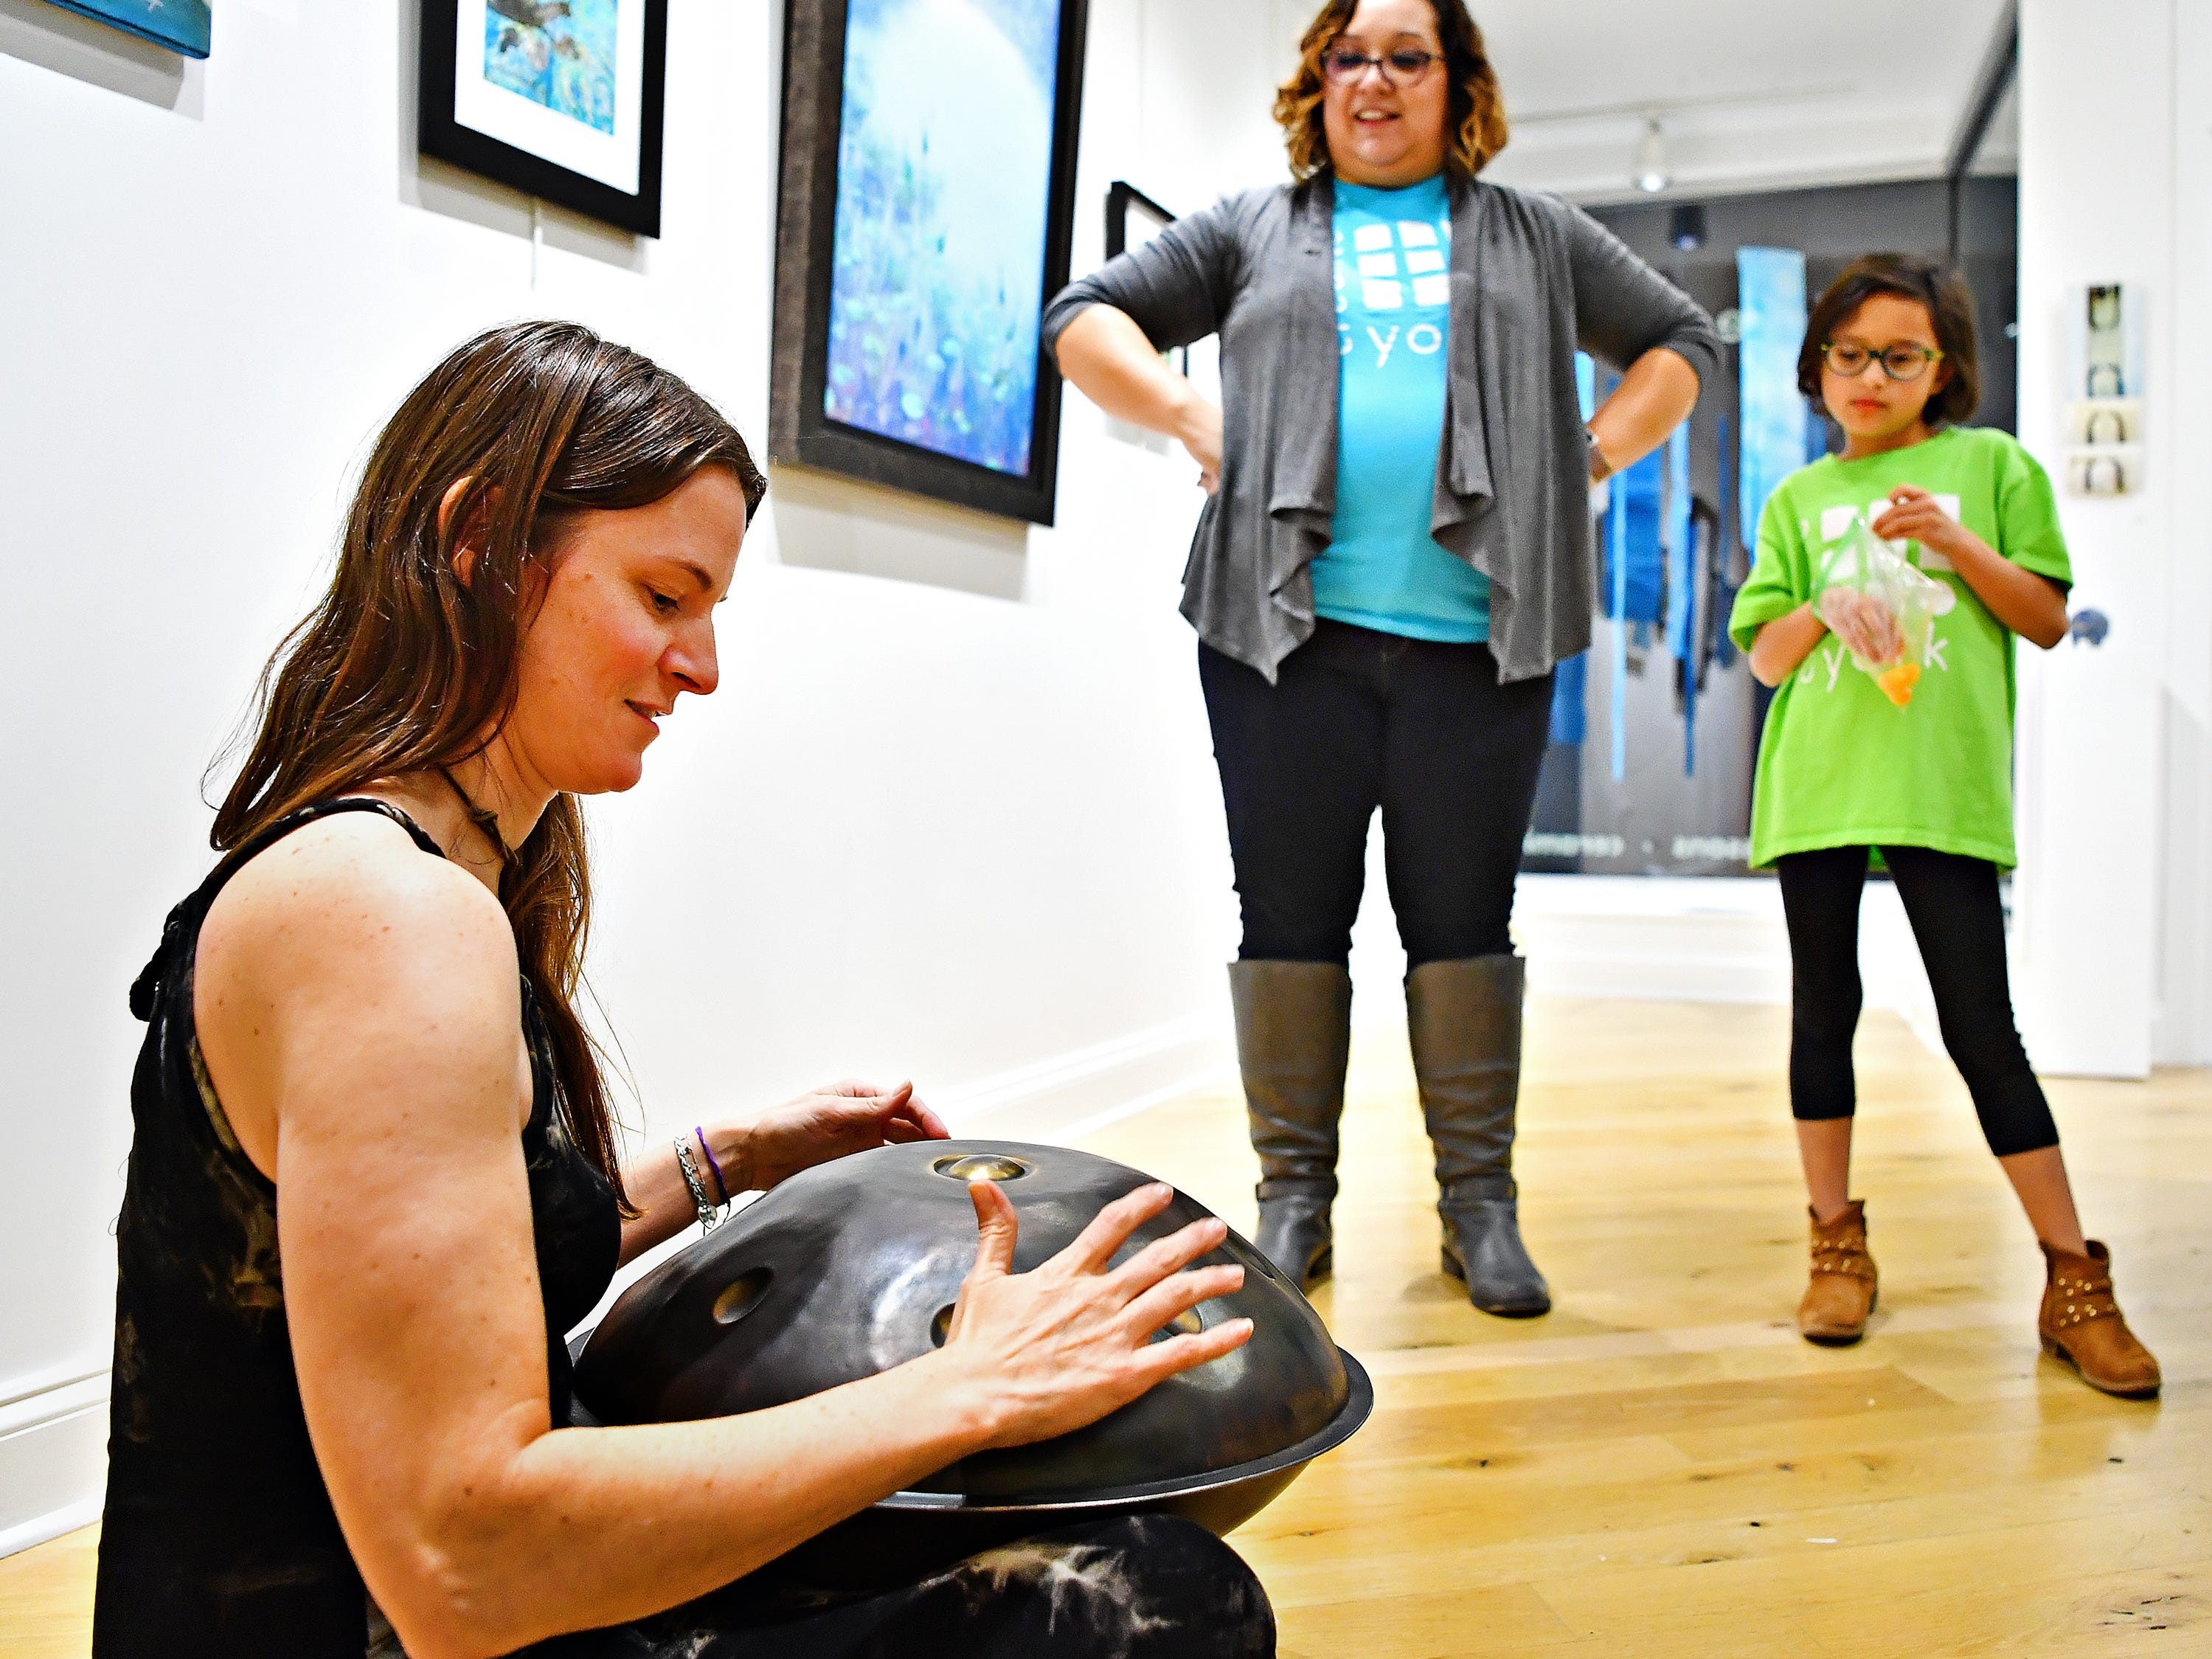 From right, Madelyn Smeltzer, 7, and her mother Samm Smeltzer, both of Manchester, look on as Chelsea Caroline, of Harrisburg, plays the handpan during the first First Friday of the year at Creative York in York City, Friday, Jan. 4, 2019. Caroline is one of the artists who's work is featured as part of the Water ER,  a multi-media, traveling art exhibit that focuses on the Susquehanna River, and is currently on exhibit in The Project Space at Creative York. For more information about the exhibit go to https://www.earthenwater.com/water-er/. Dawn J. Sagert photo